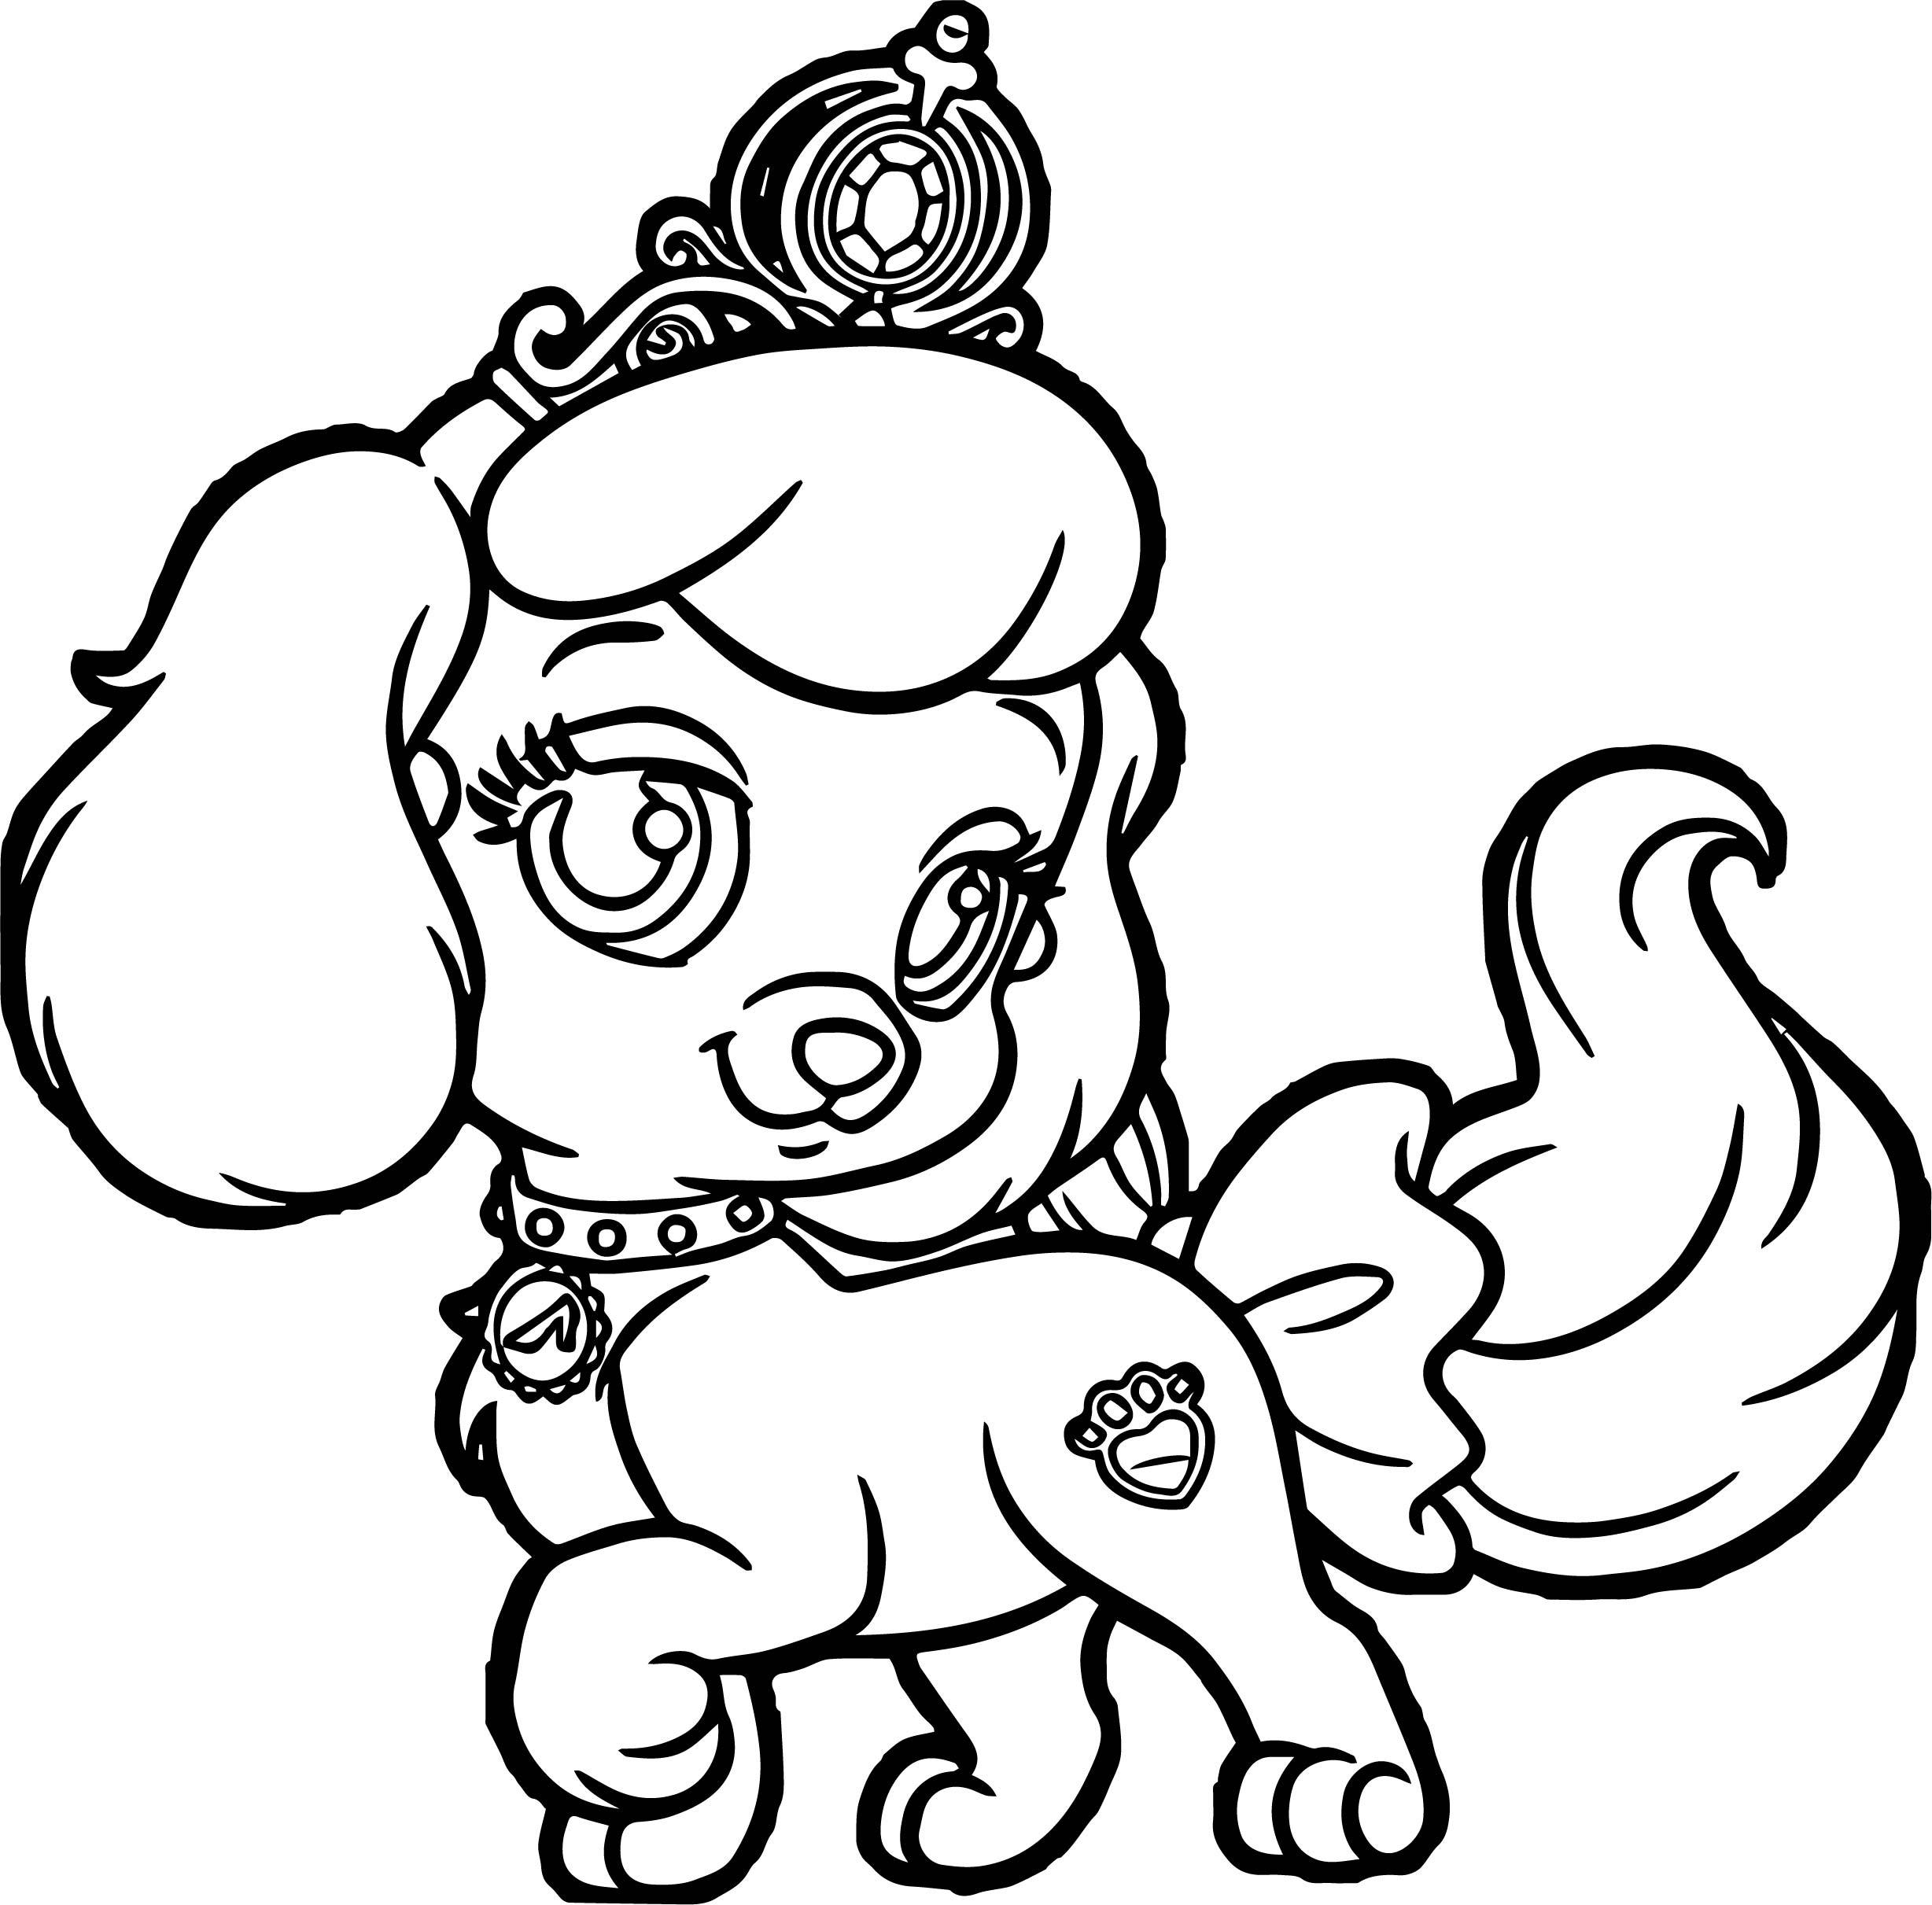 dogs pictures to color free printable puppies coloring pages for kids dogs pictures to color